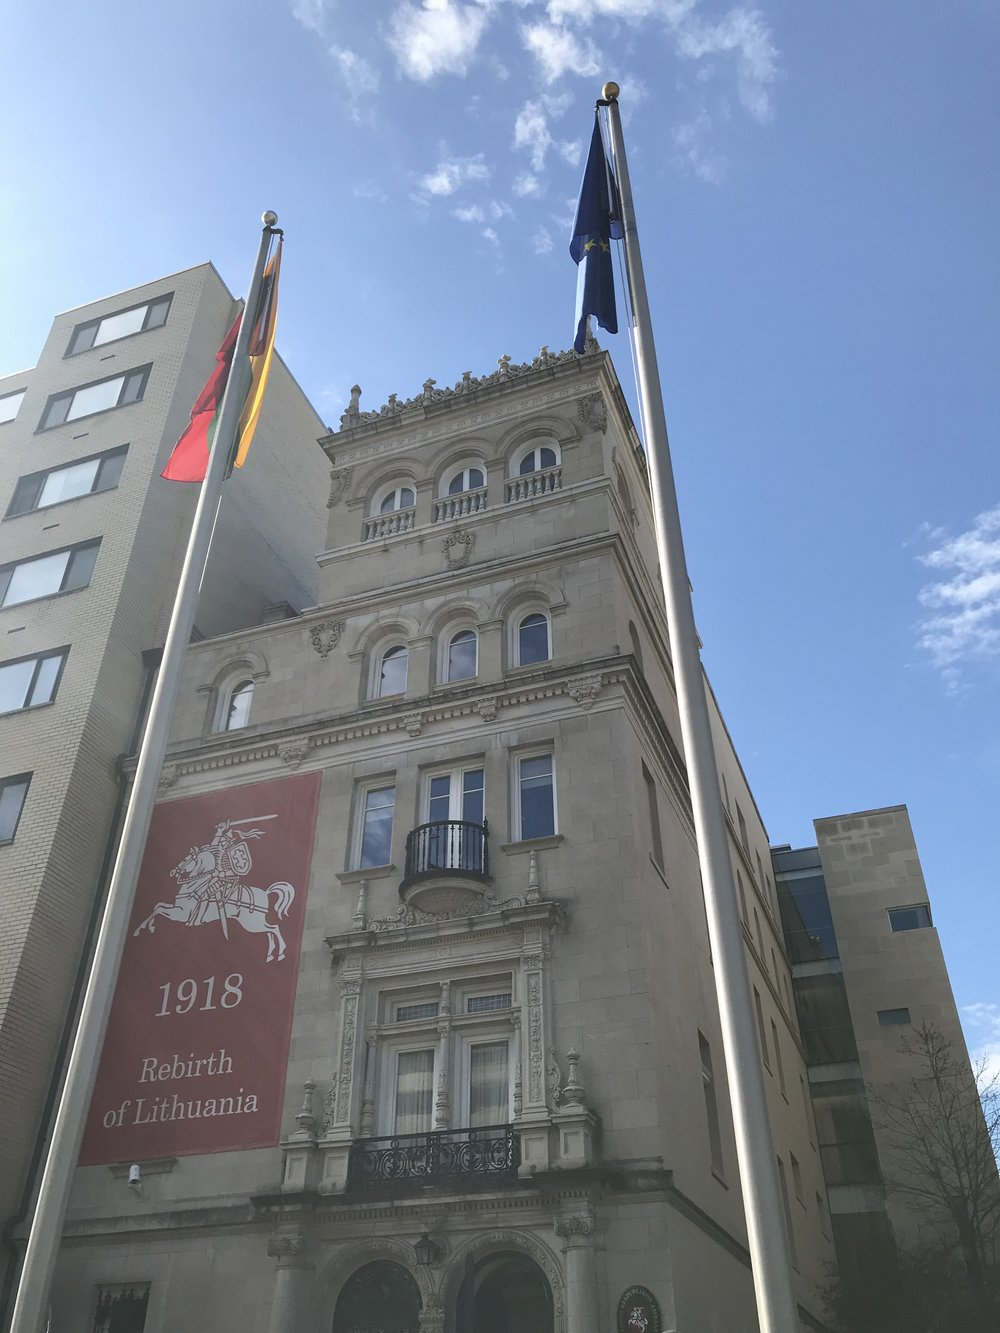 The Embassy of Lithuania.  Happy 100th birthday!